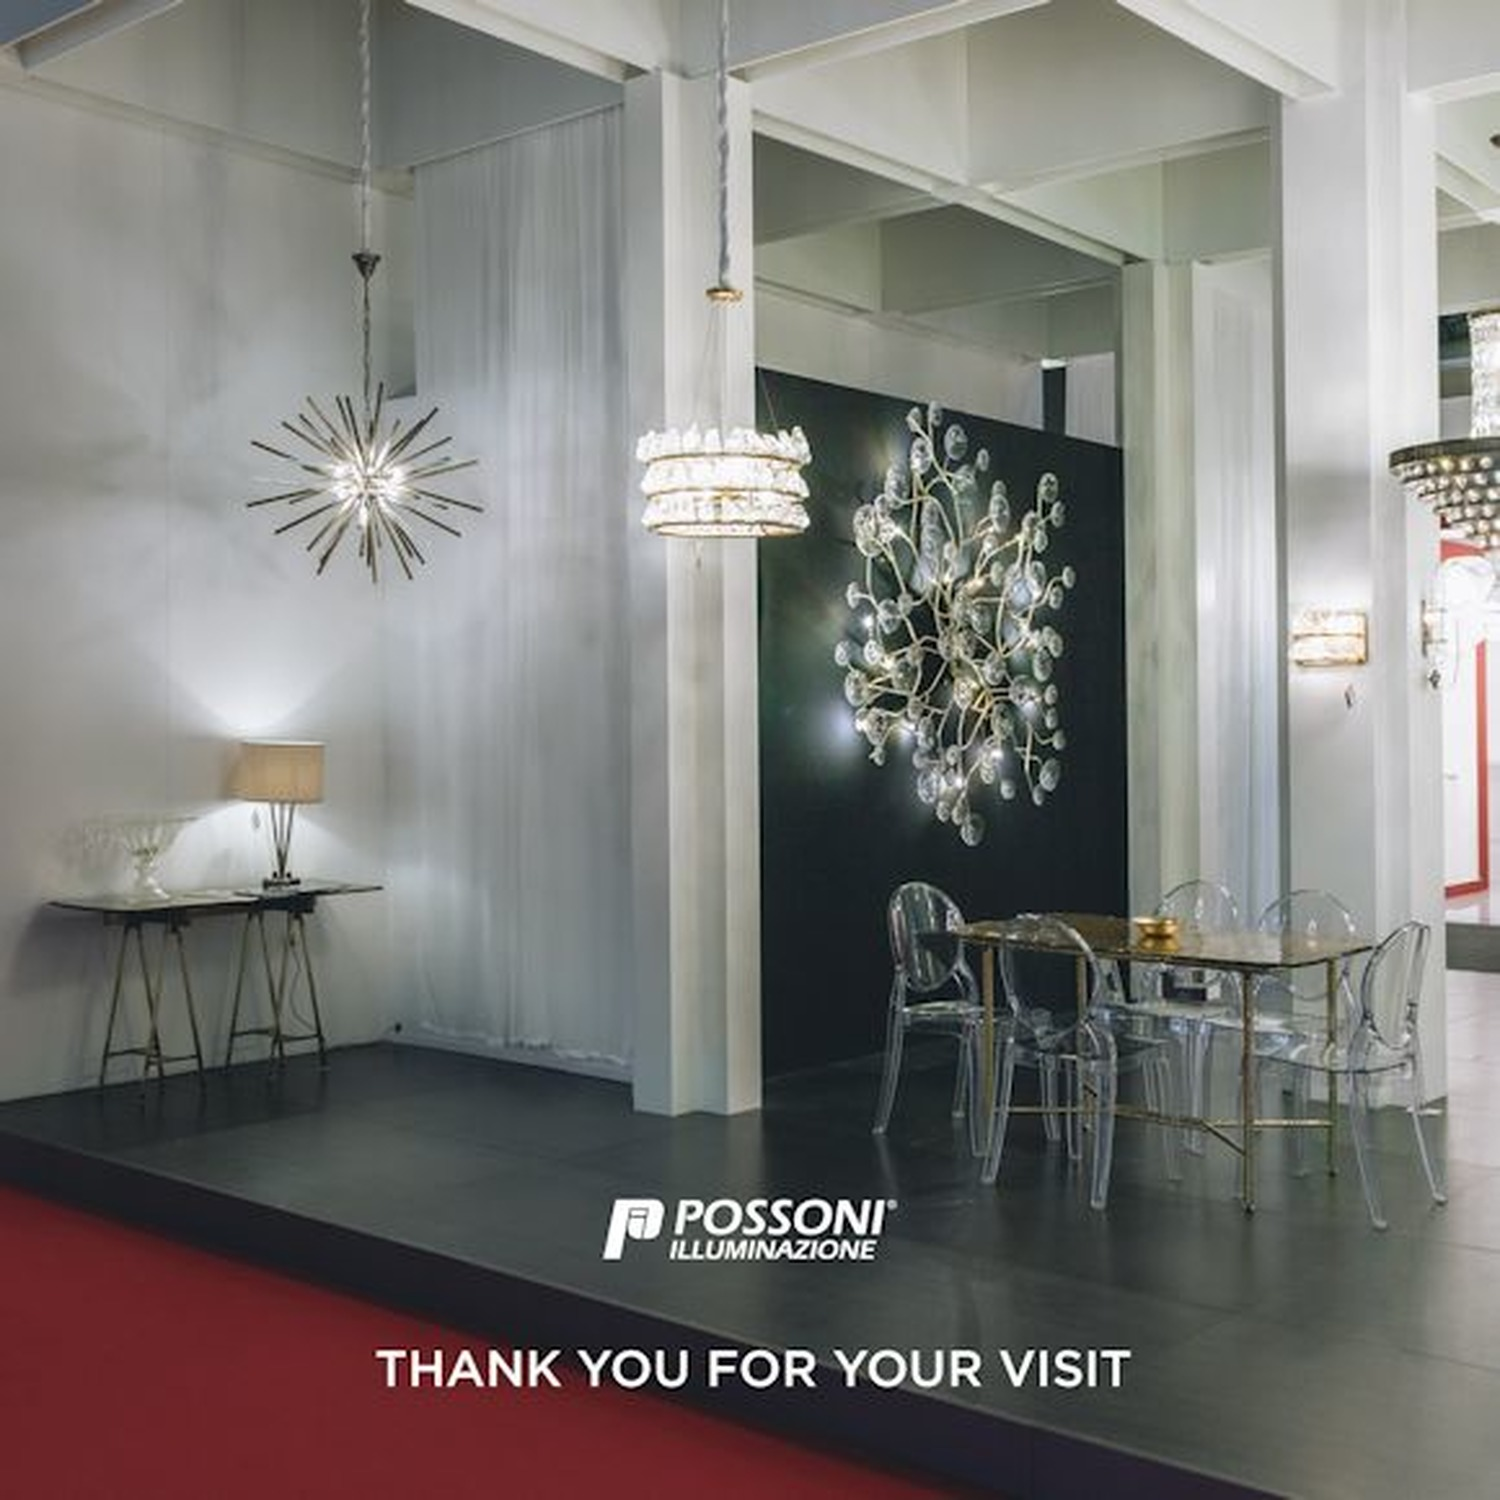 Lampadari classici made in italy by possoni illuminazione